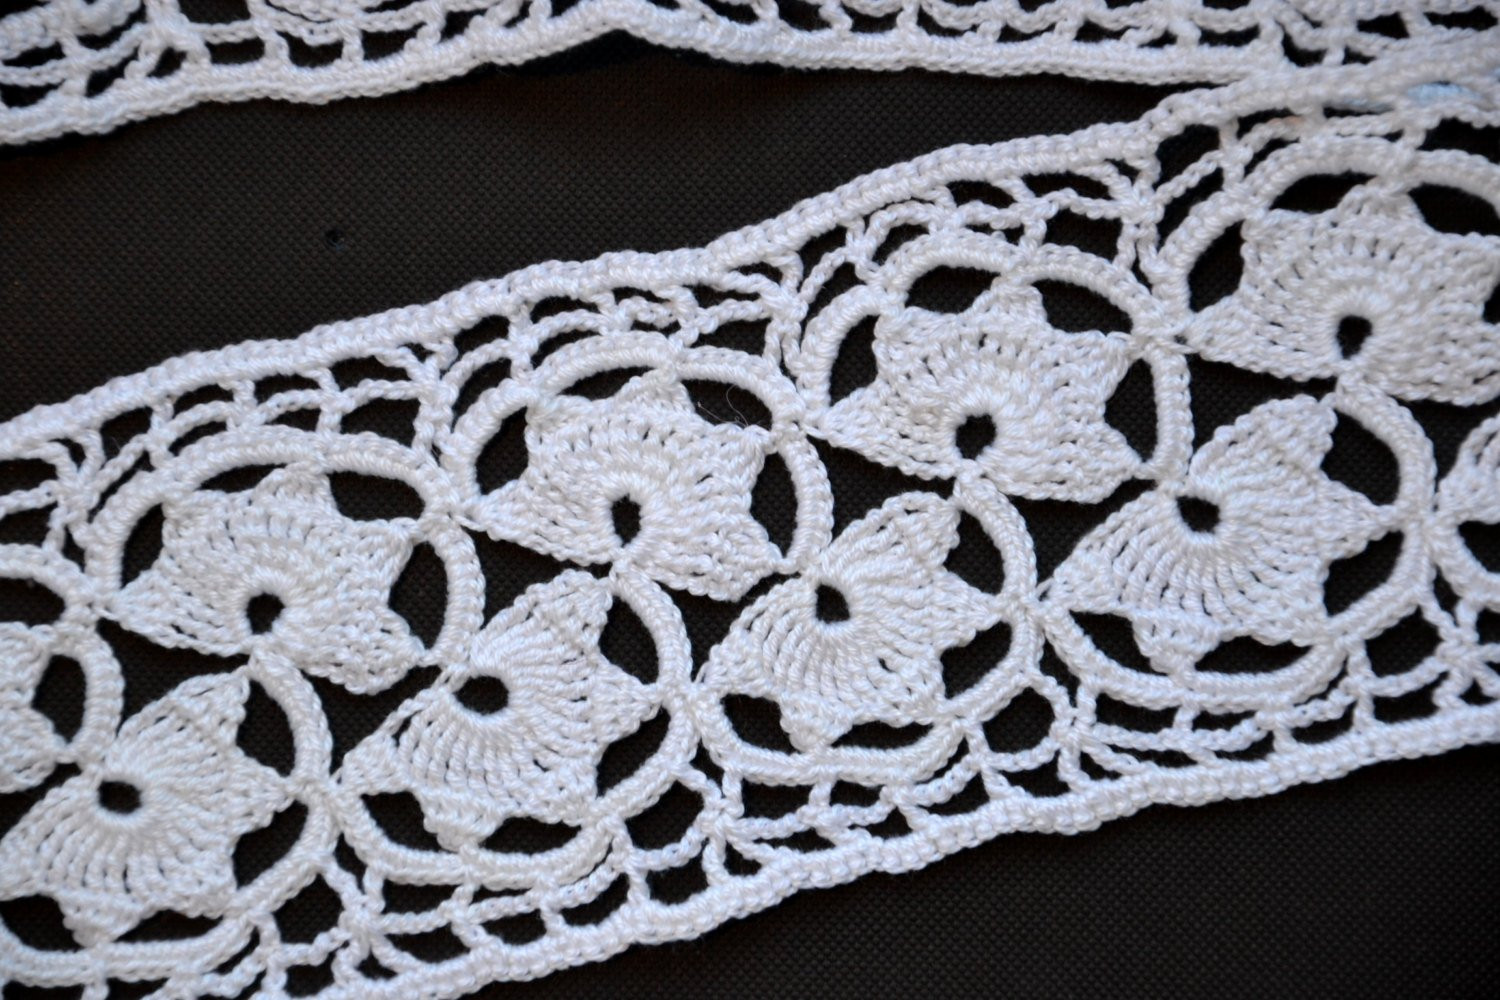 Crochet Lace Trimming New Hand Crocheted Lace Trim Vintage Supply Wide Crochet Lace Of Superb 50 Pics Crochet Lace Trimming